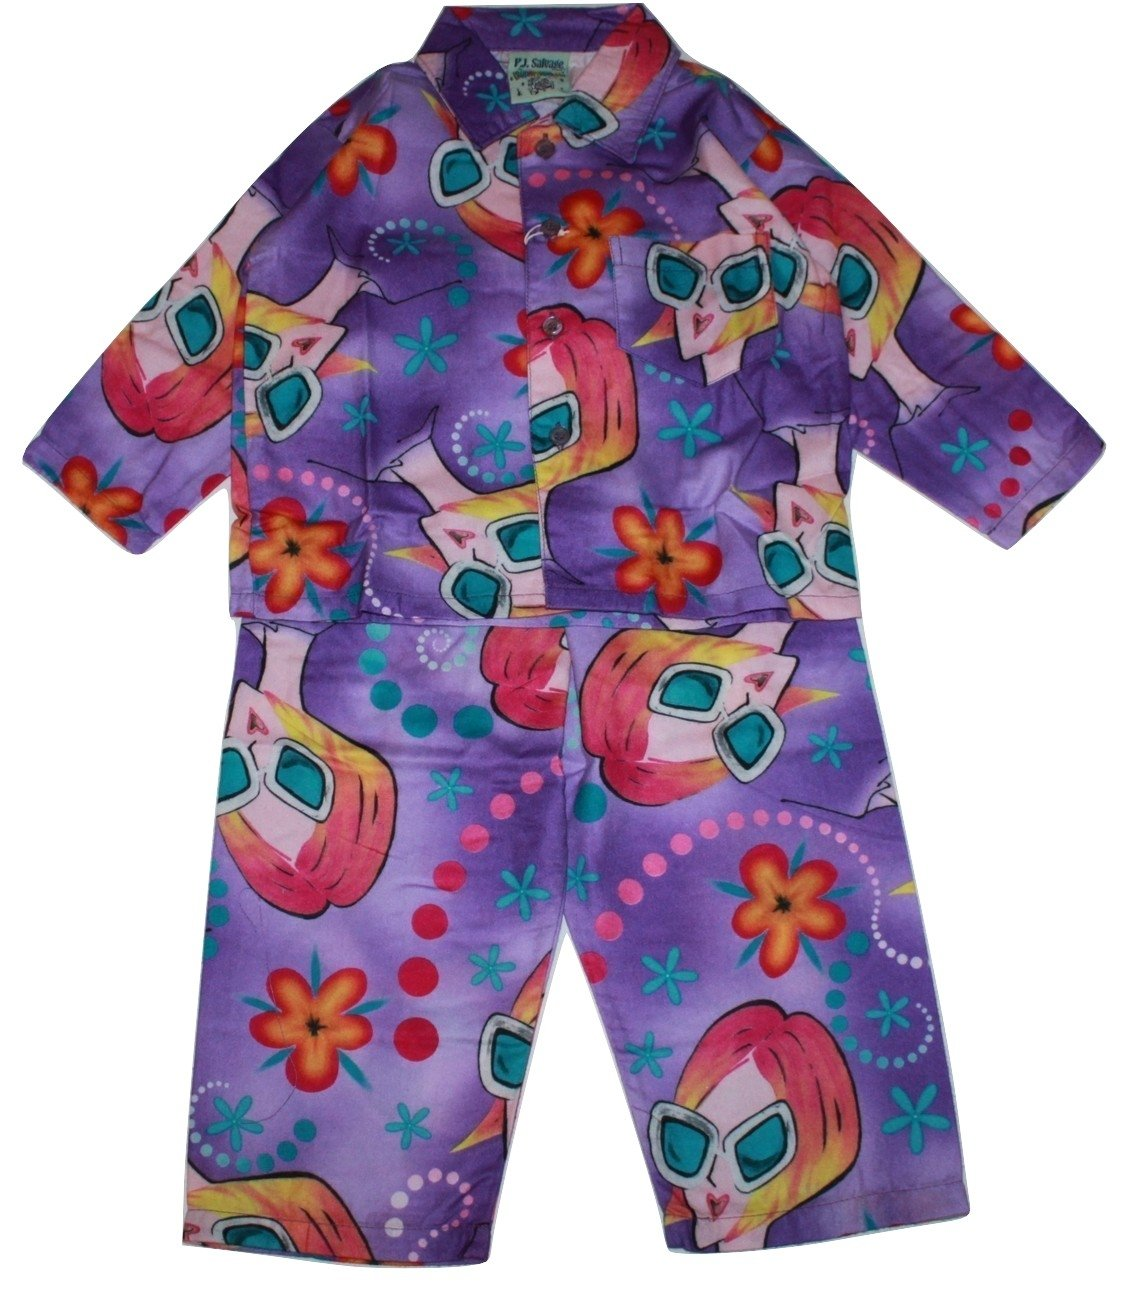 PJ Salvage Toddler Girls Flame Resistant Polyester Flannel Pajamas (Sunglasses Print, 3T)